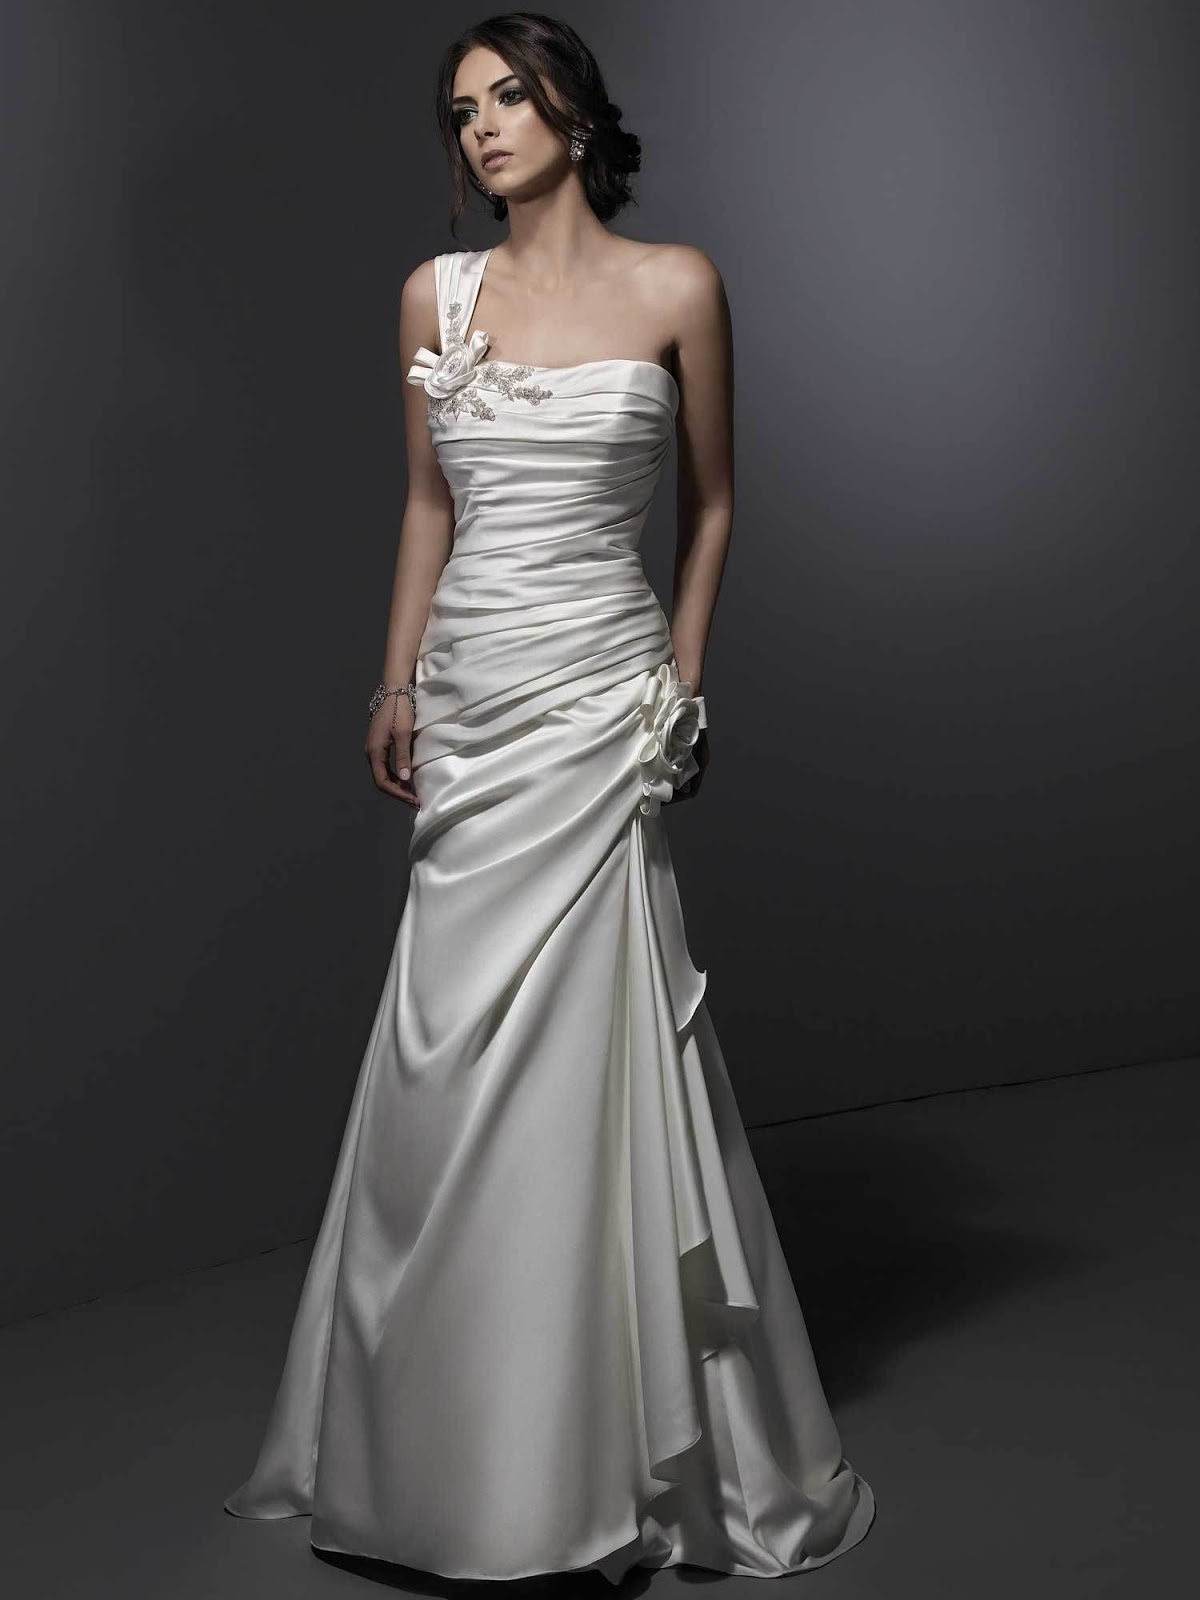 Private Label G 2013 Spring Collection - World of Bridal